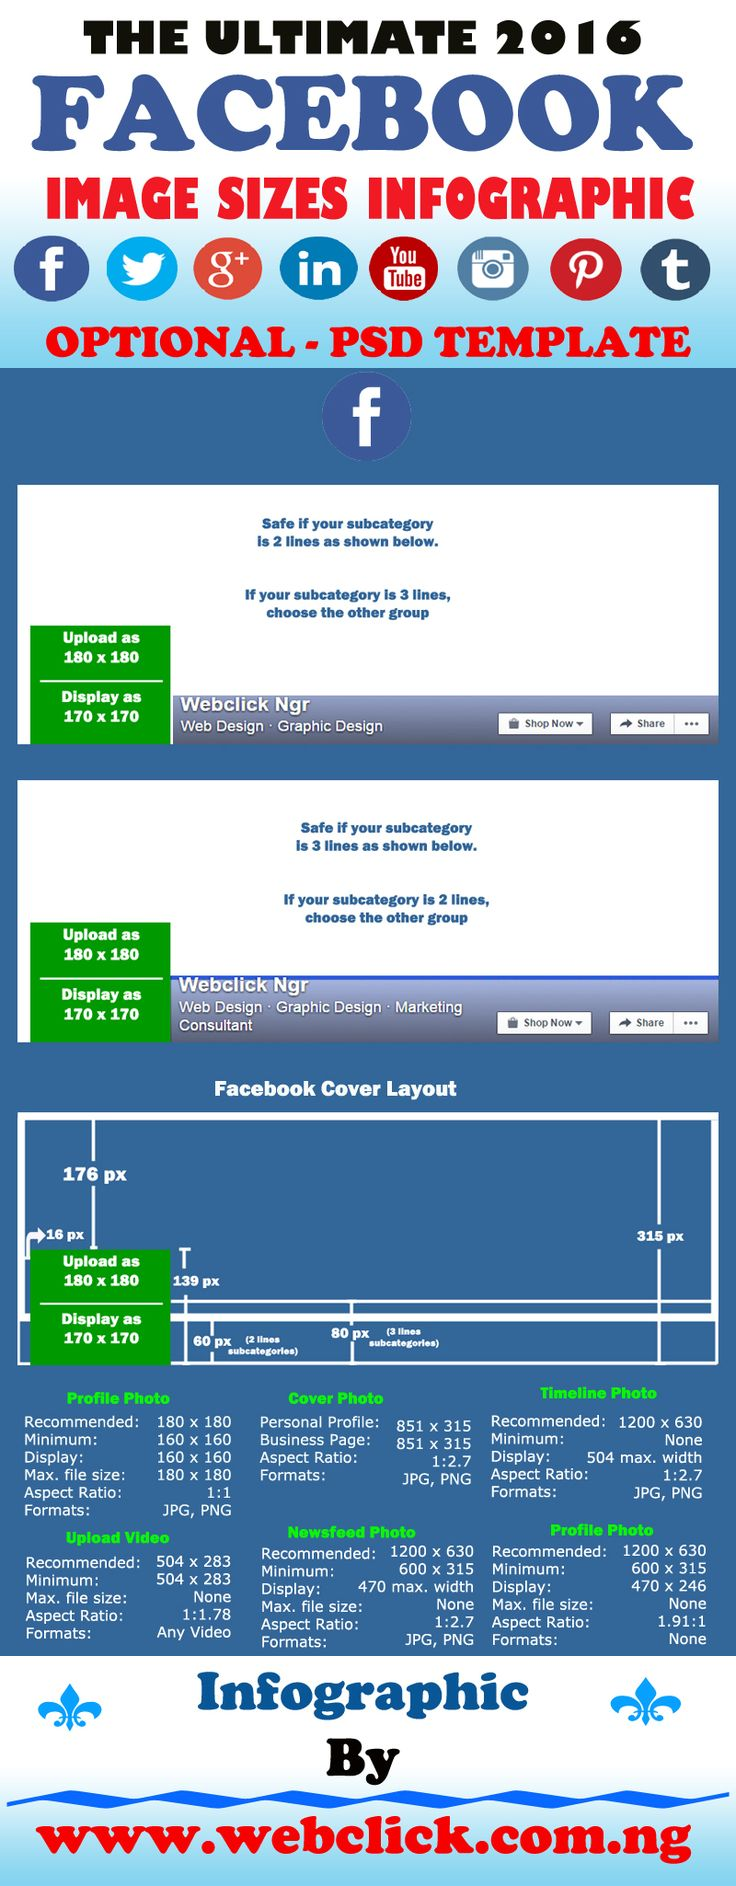 Get the new 2016 Facebook cover photo size in this infographic + PSD template.  Social media platforms are forever changing the image sizes and formats, so to keep you all updated I have re-created the 2016 Facebook image sizes infographic and included an…